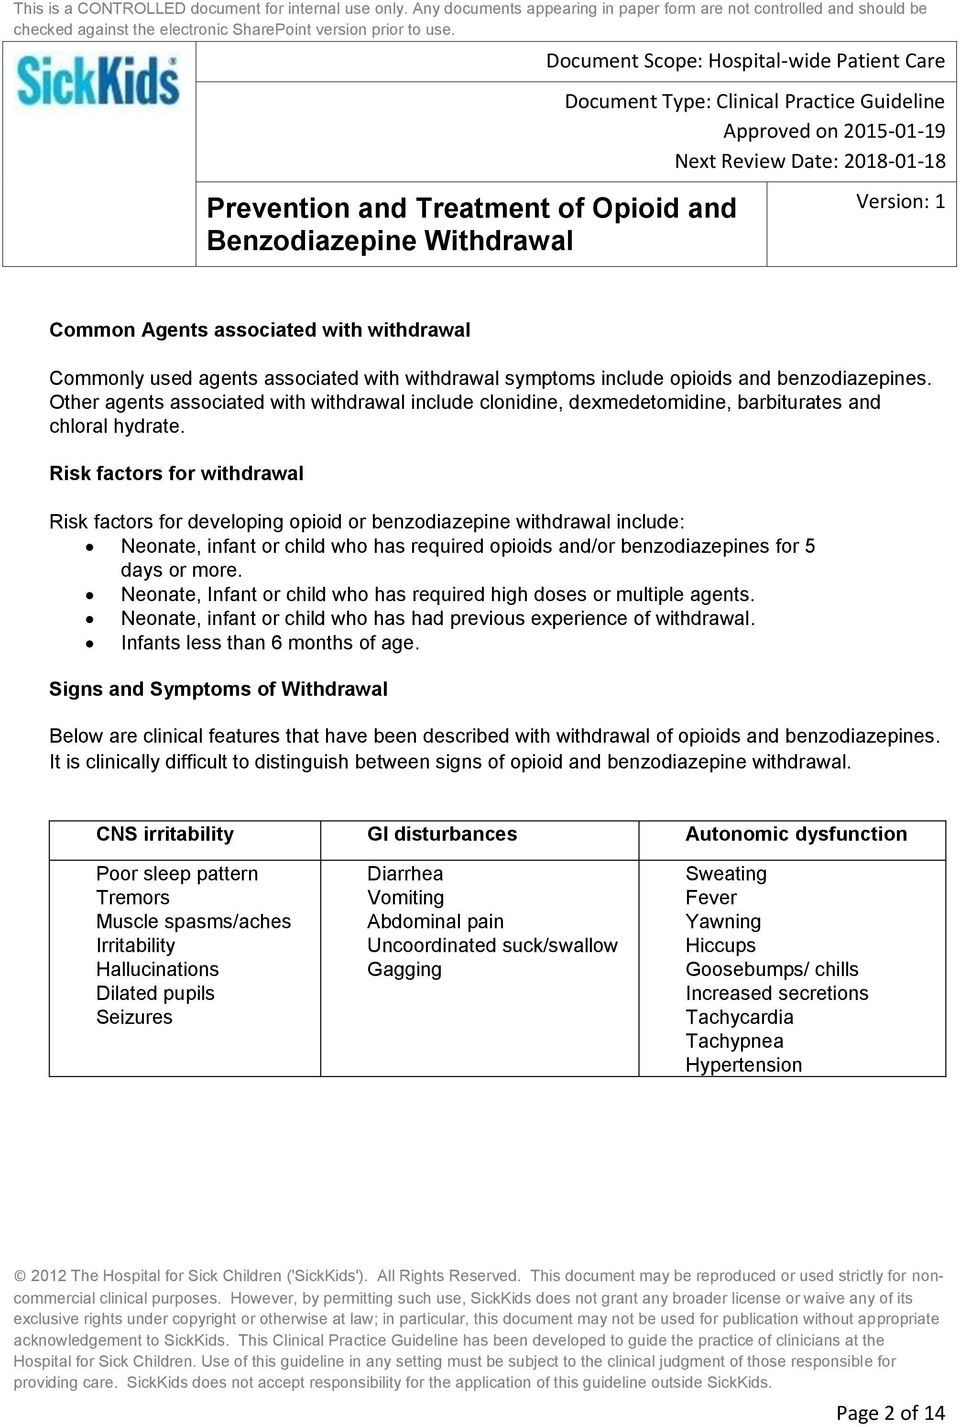 Prevention and Treatment of Opioid and Benzodiazepine